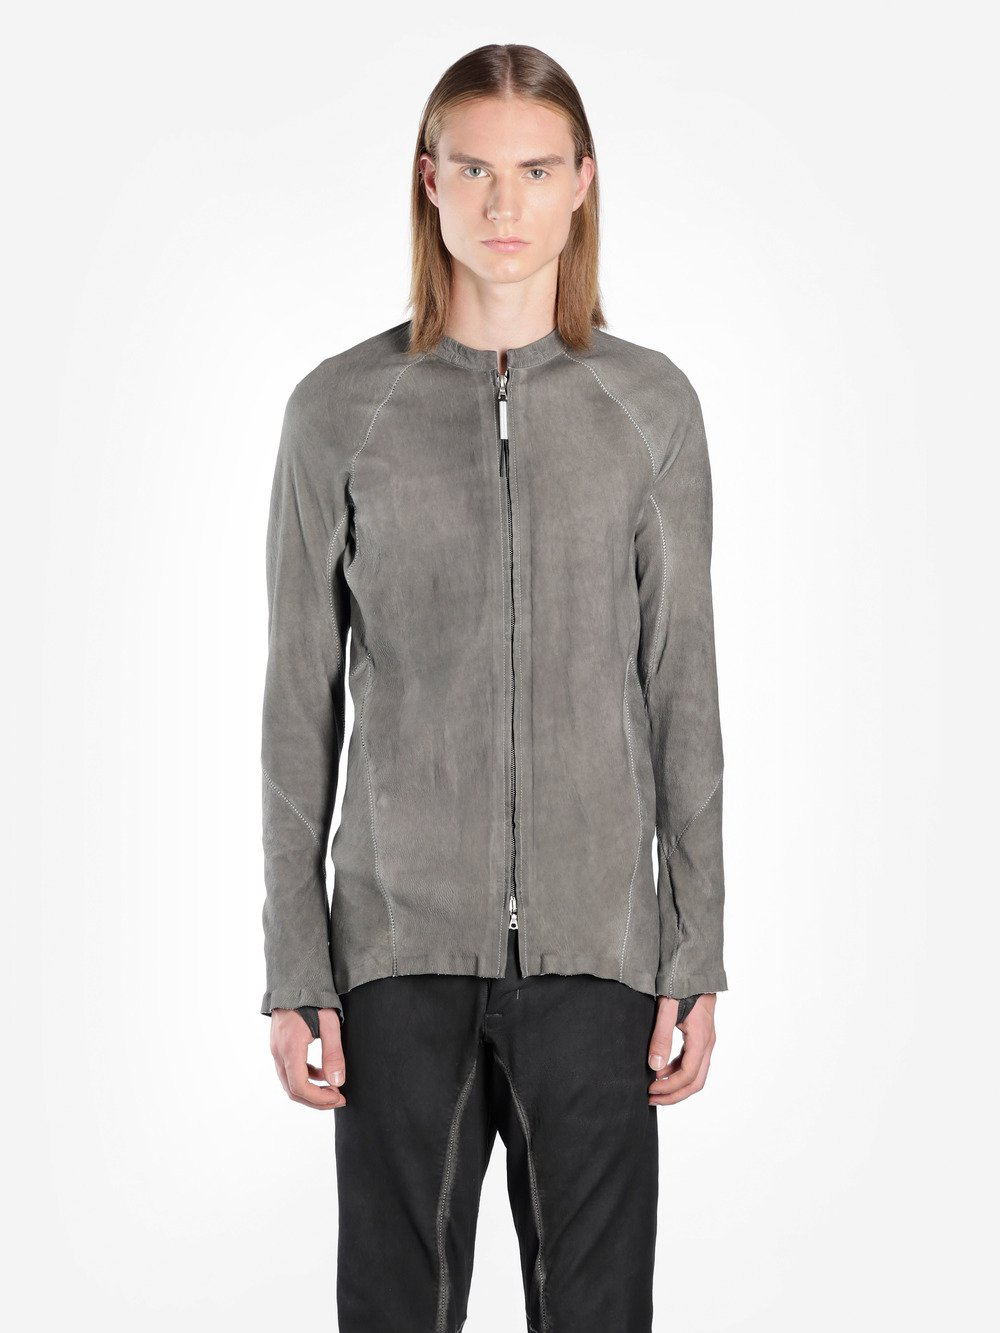 ISAAC SELLAM MEN'S GREY LEATHER JACKET